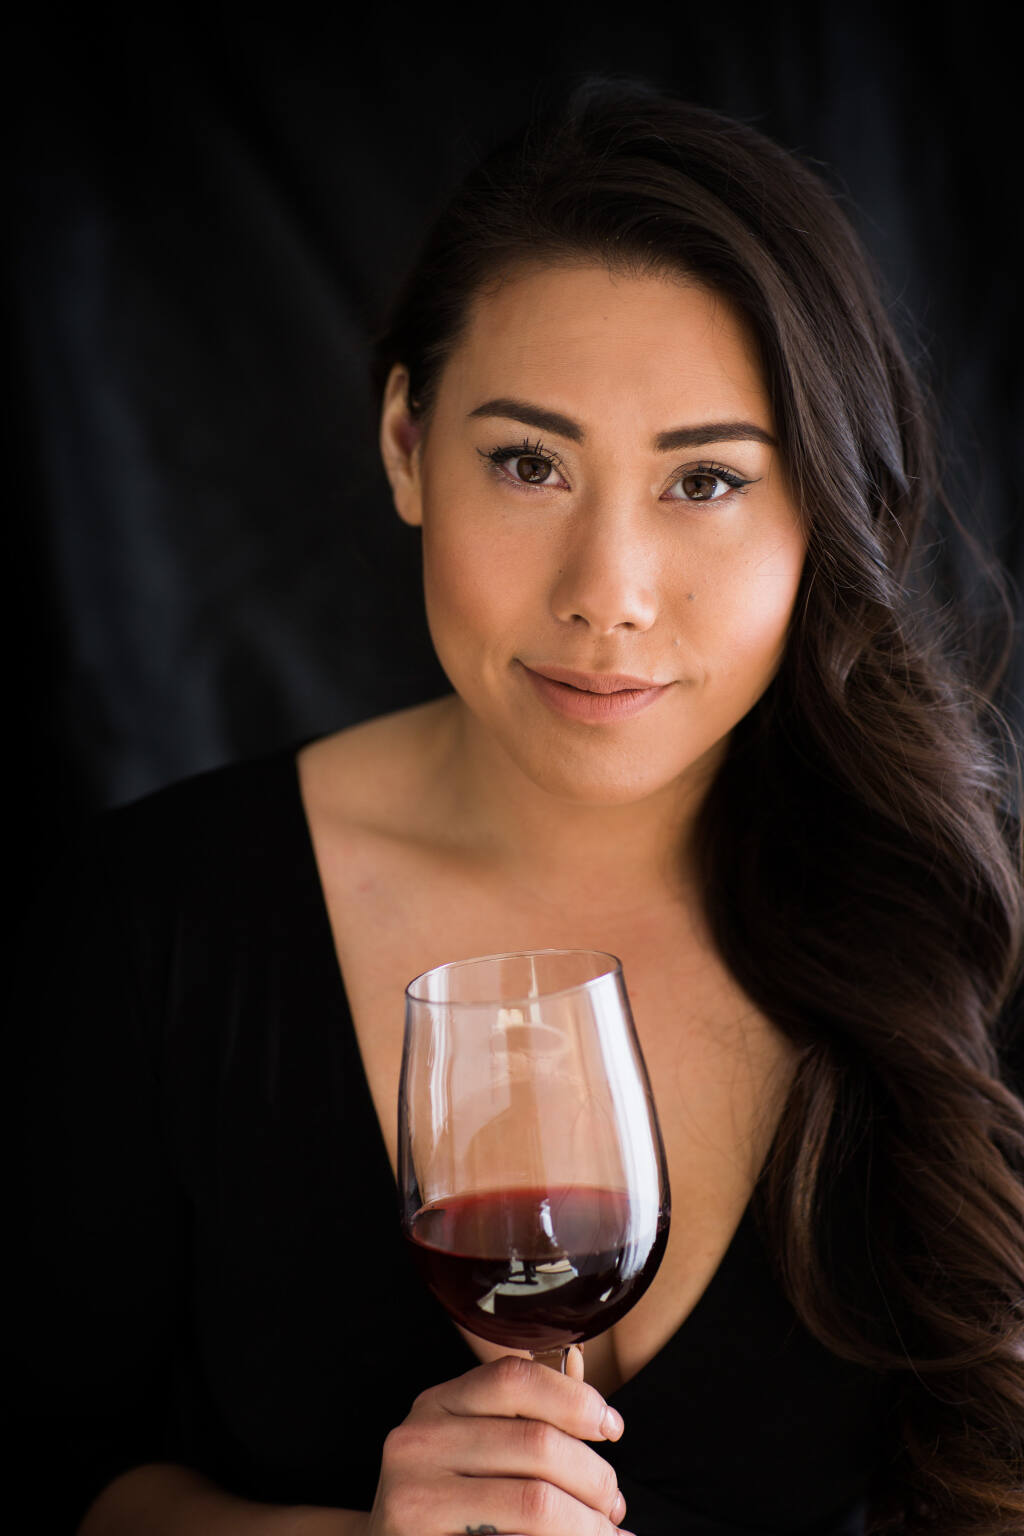 Cristie Norman, 26, is the president of the United Sommeliers Foundation and runs an online wine learning business. (courtesy photo)